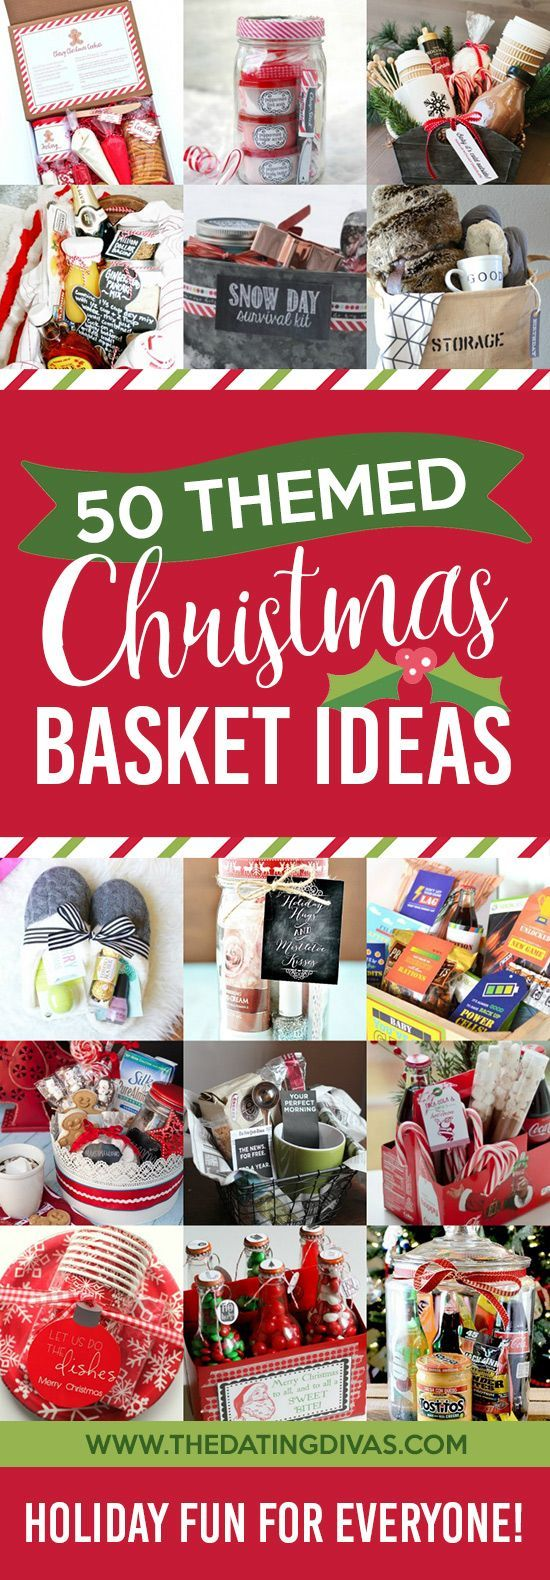 DIY Gifts Ideas : So many cute Christmas basket ideas!!! Love how ...